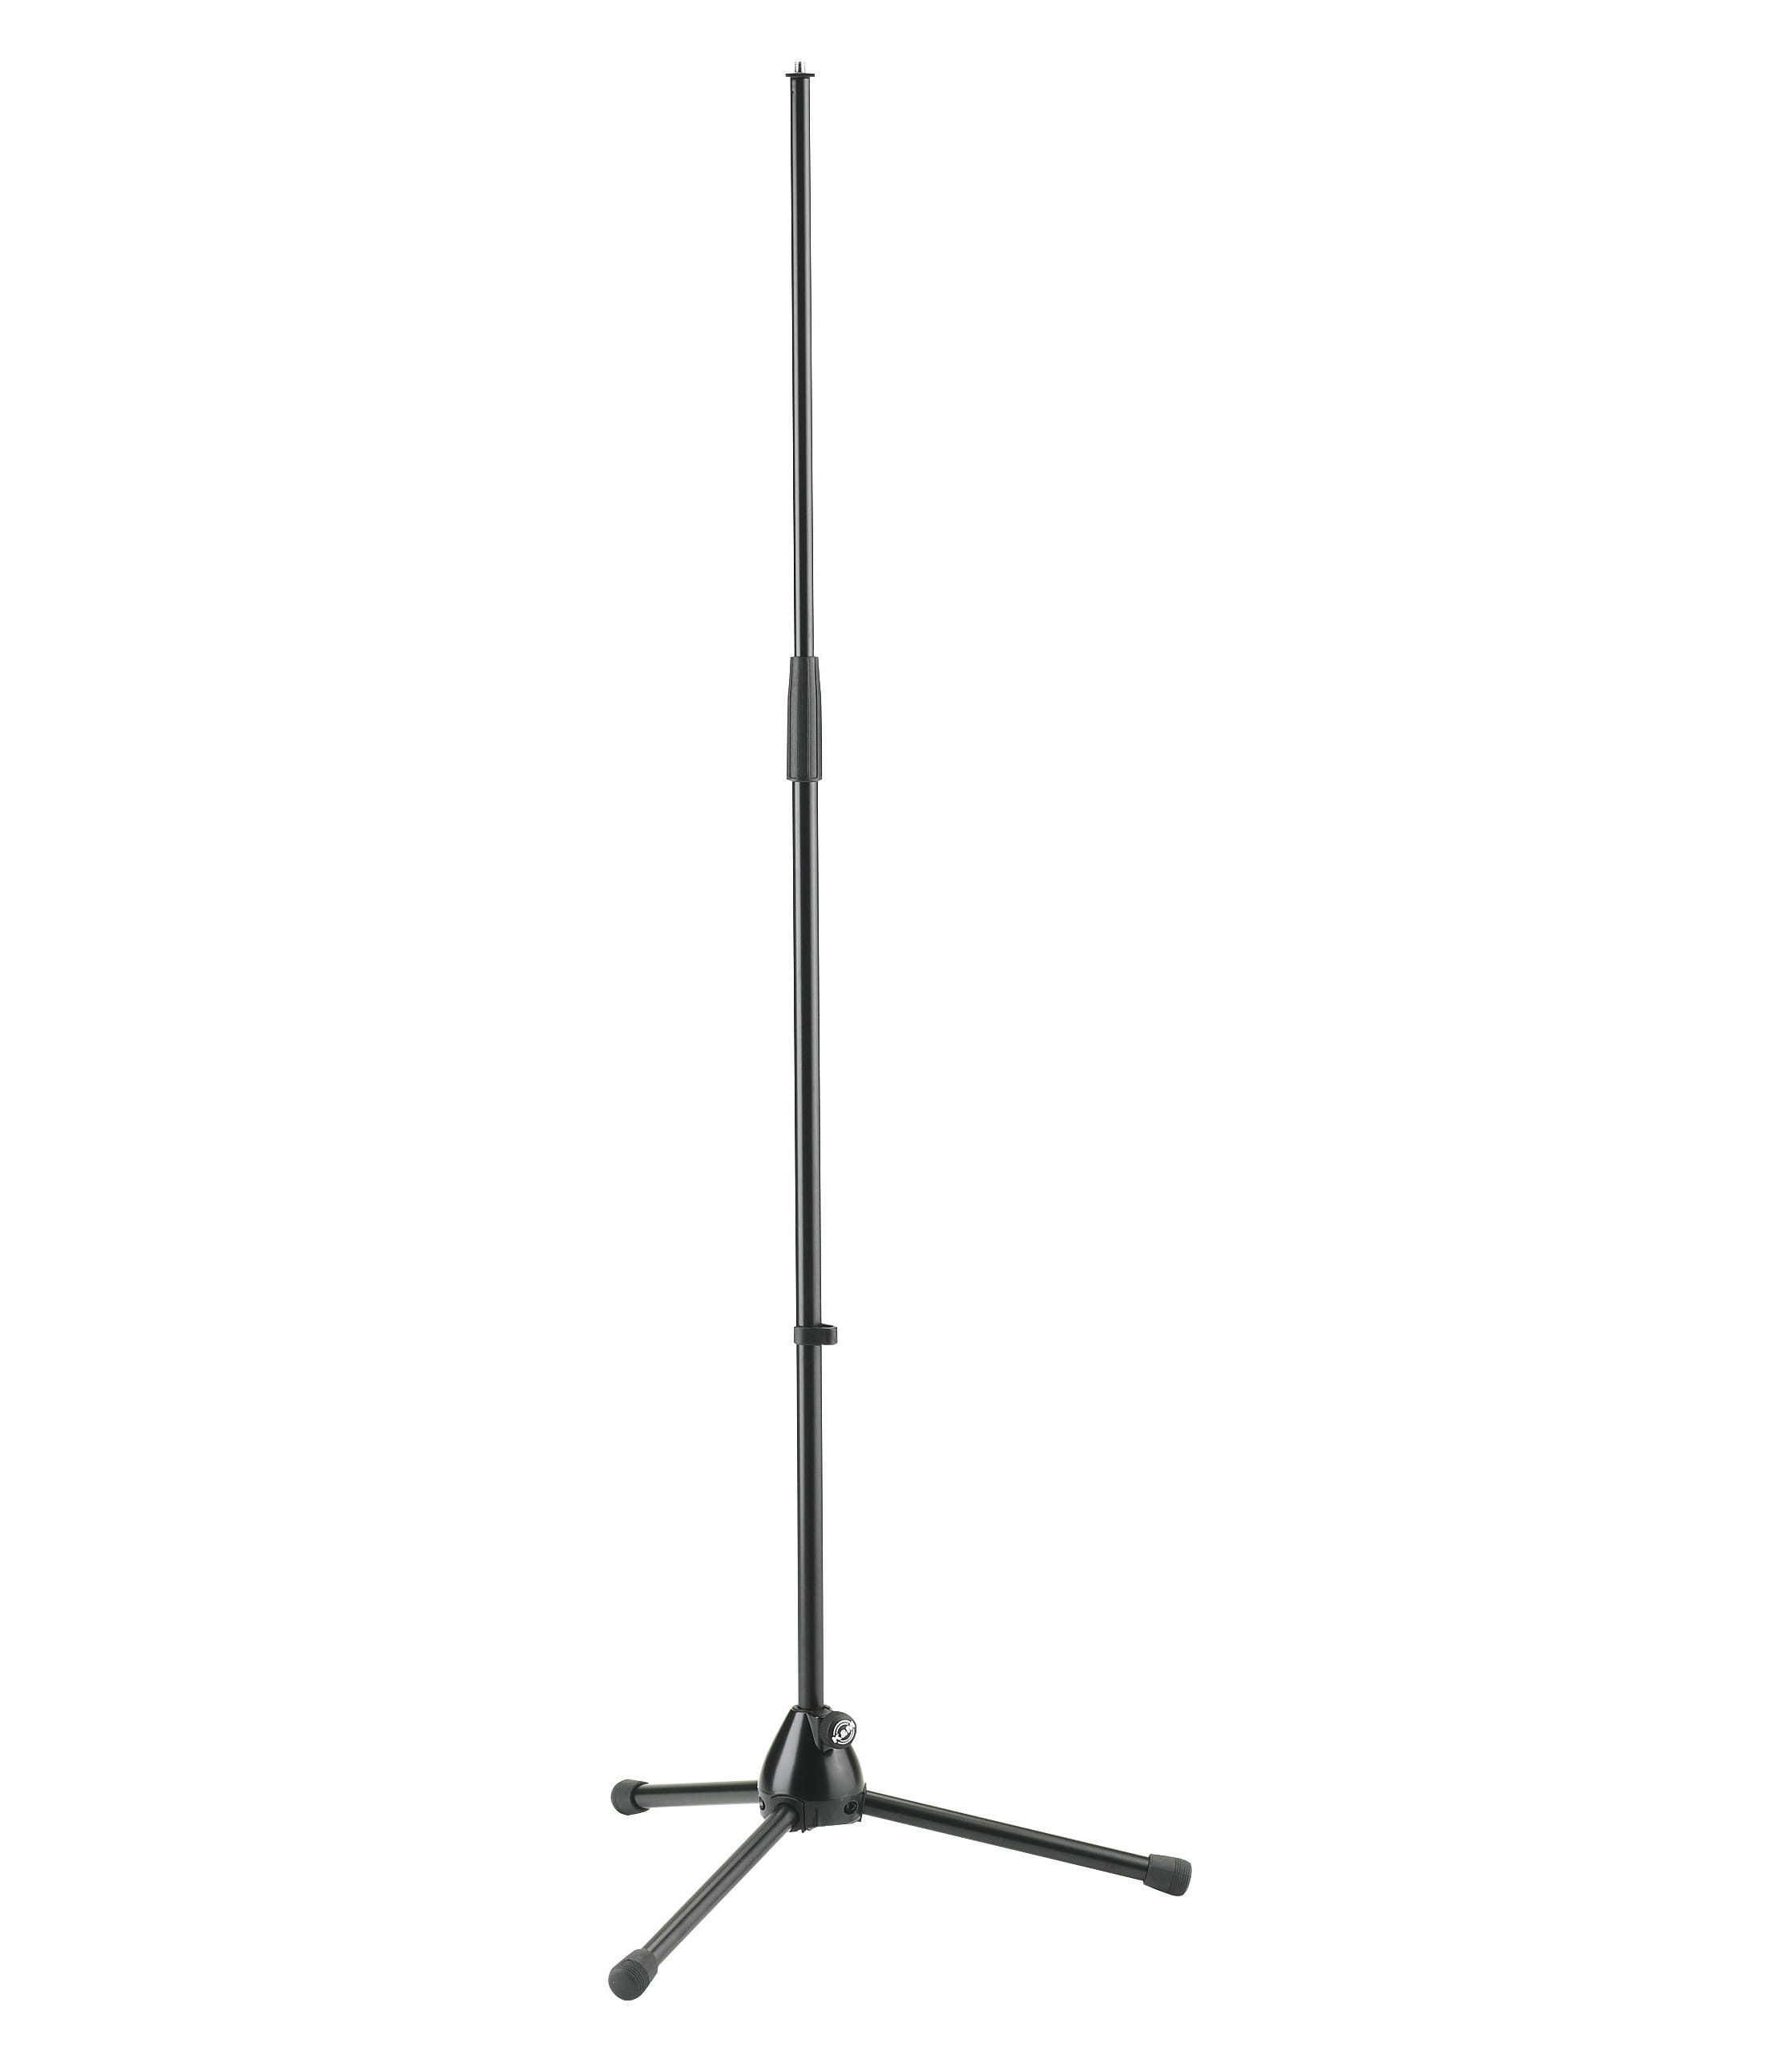 K&M - 20120 500 55 Folding short legged Mic stand - Melody House Musical Instruments